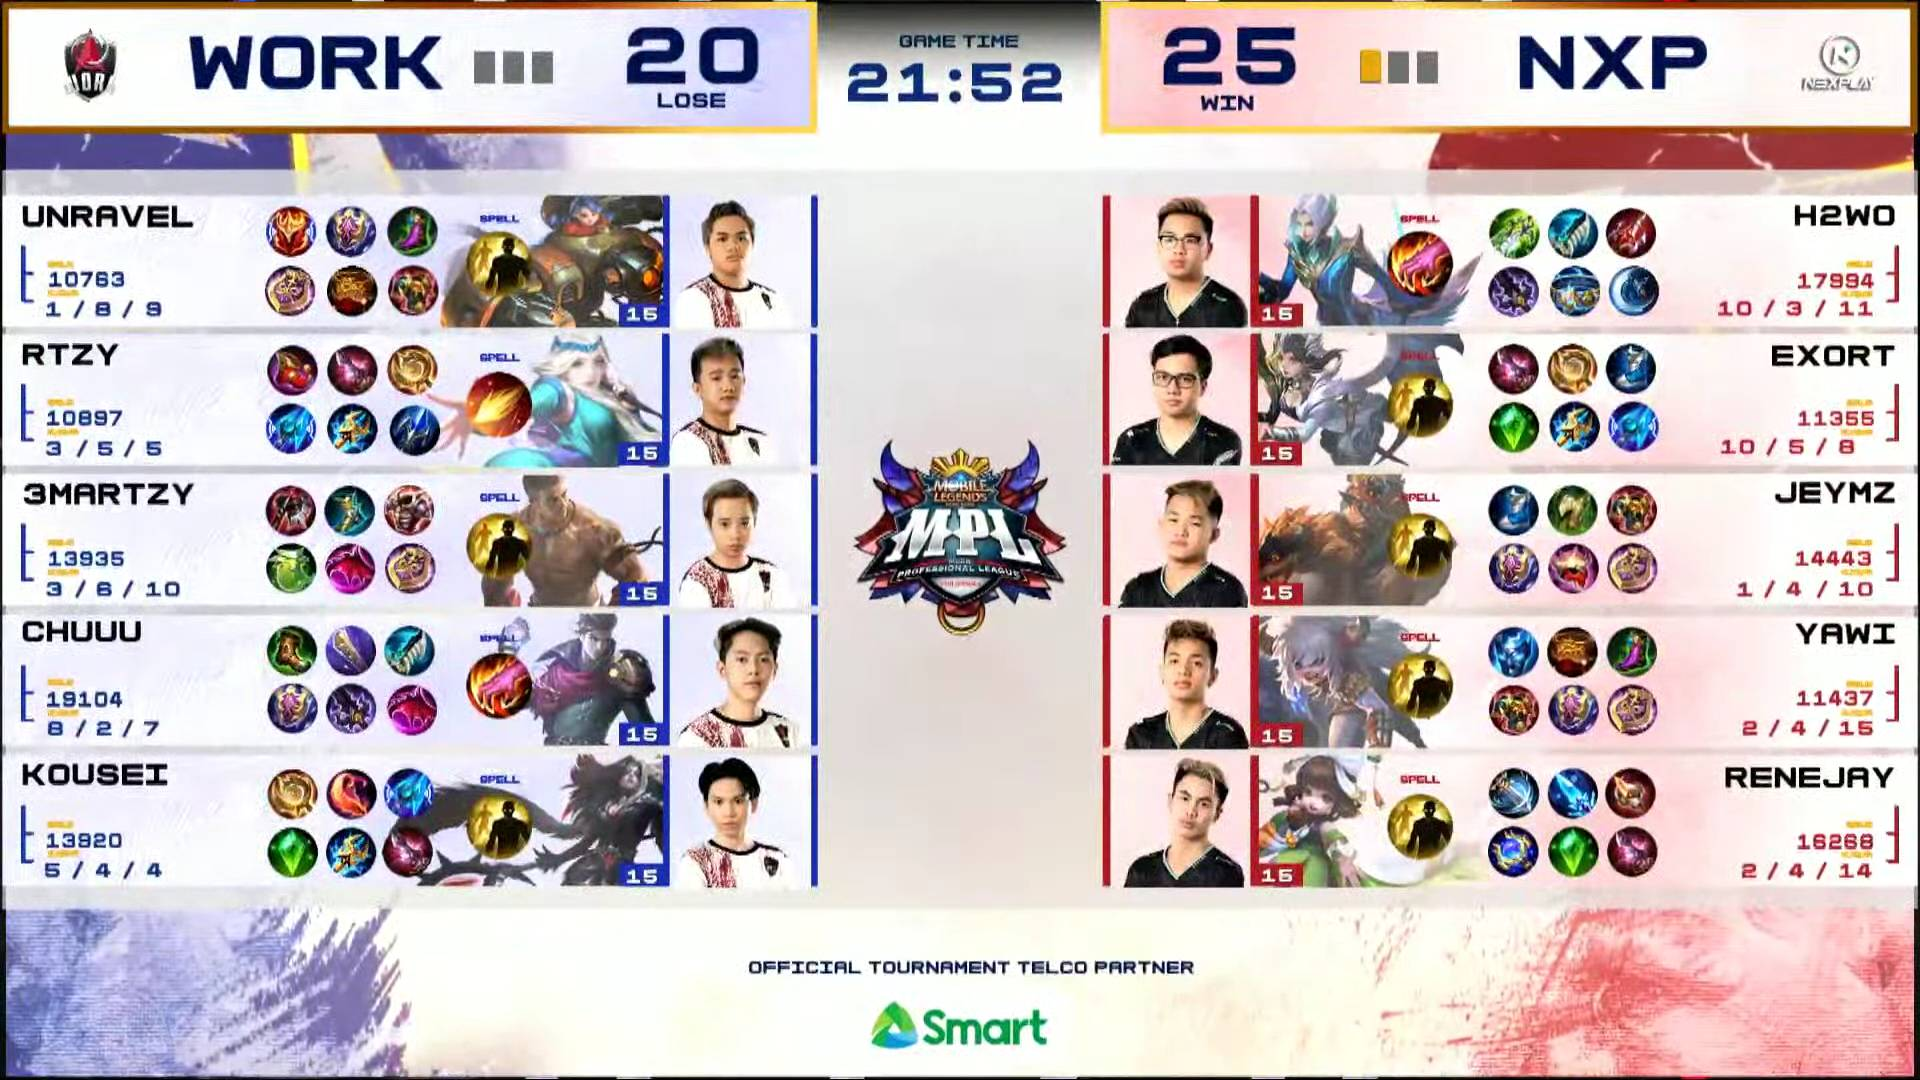 MPL-PH-7-Work-Auster-def-NXP-Game-1 Kousei's Esmeralda takes charge in clincher as Work Auster boots out Nexplay in MPL ESports Mobile Legends MPL-PH News  - philippine sports news